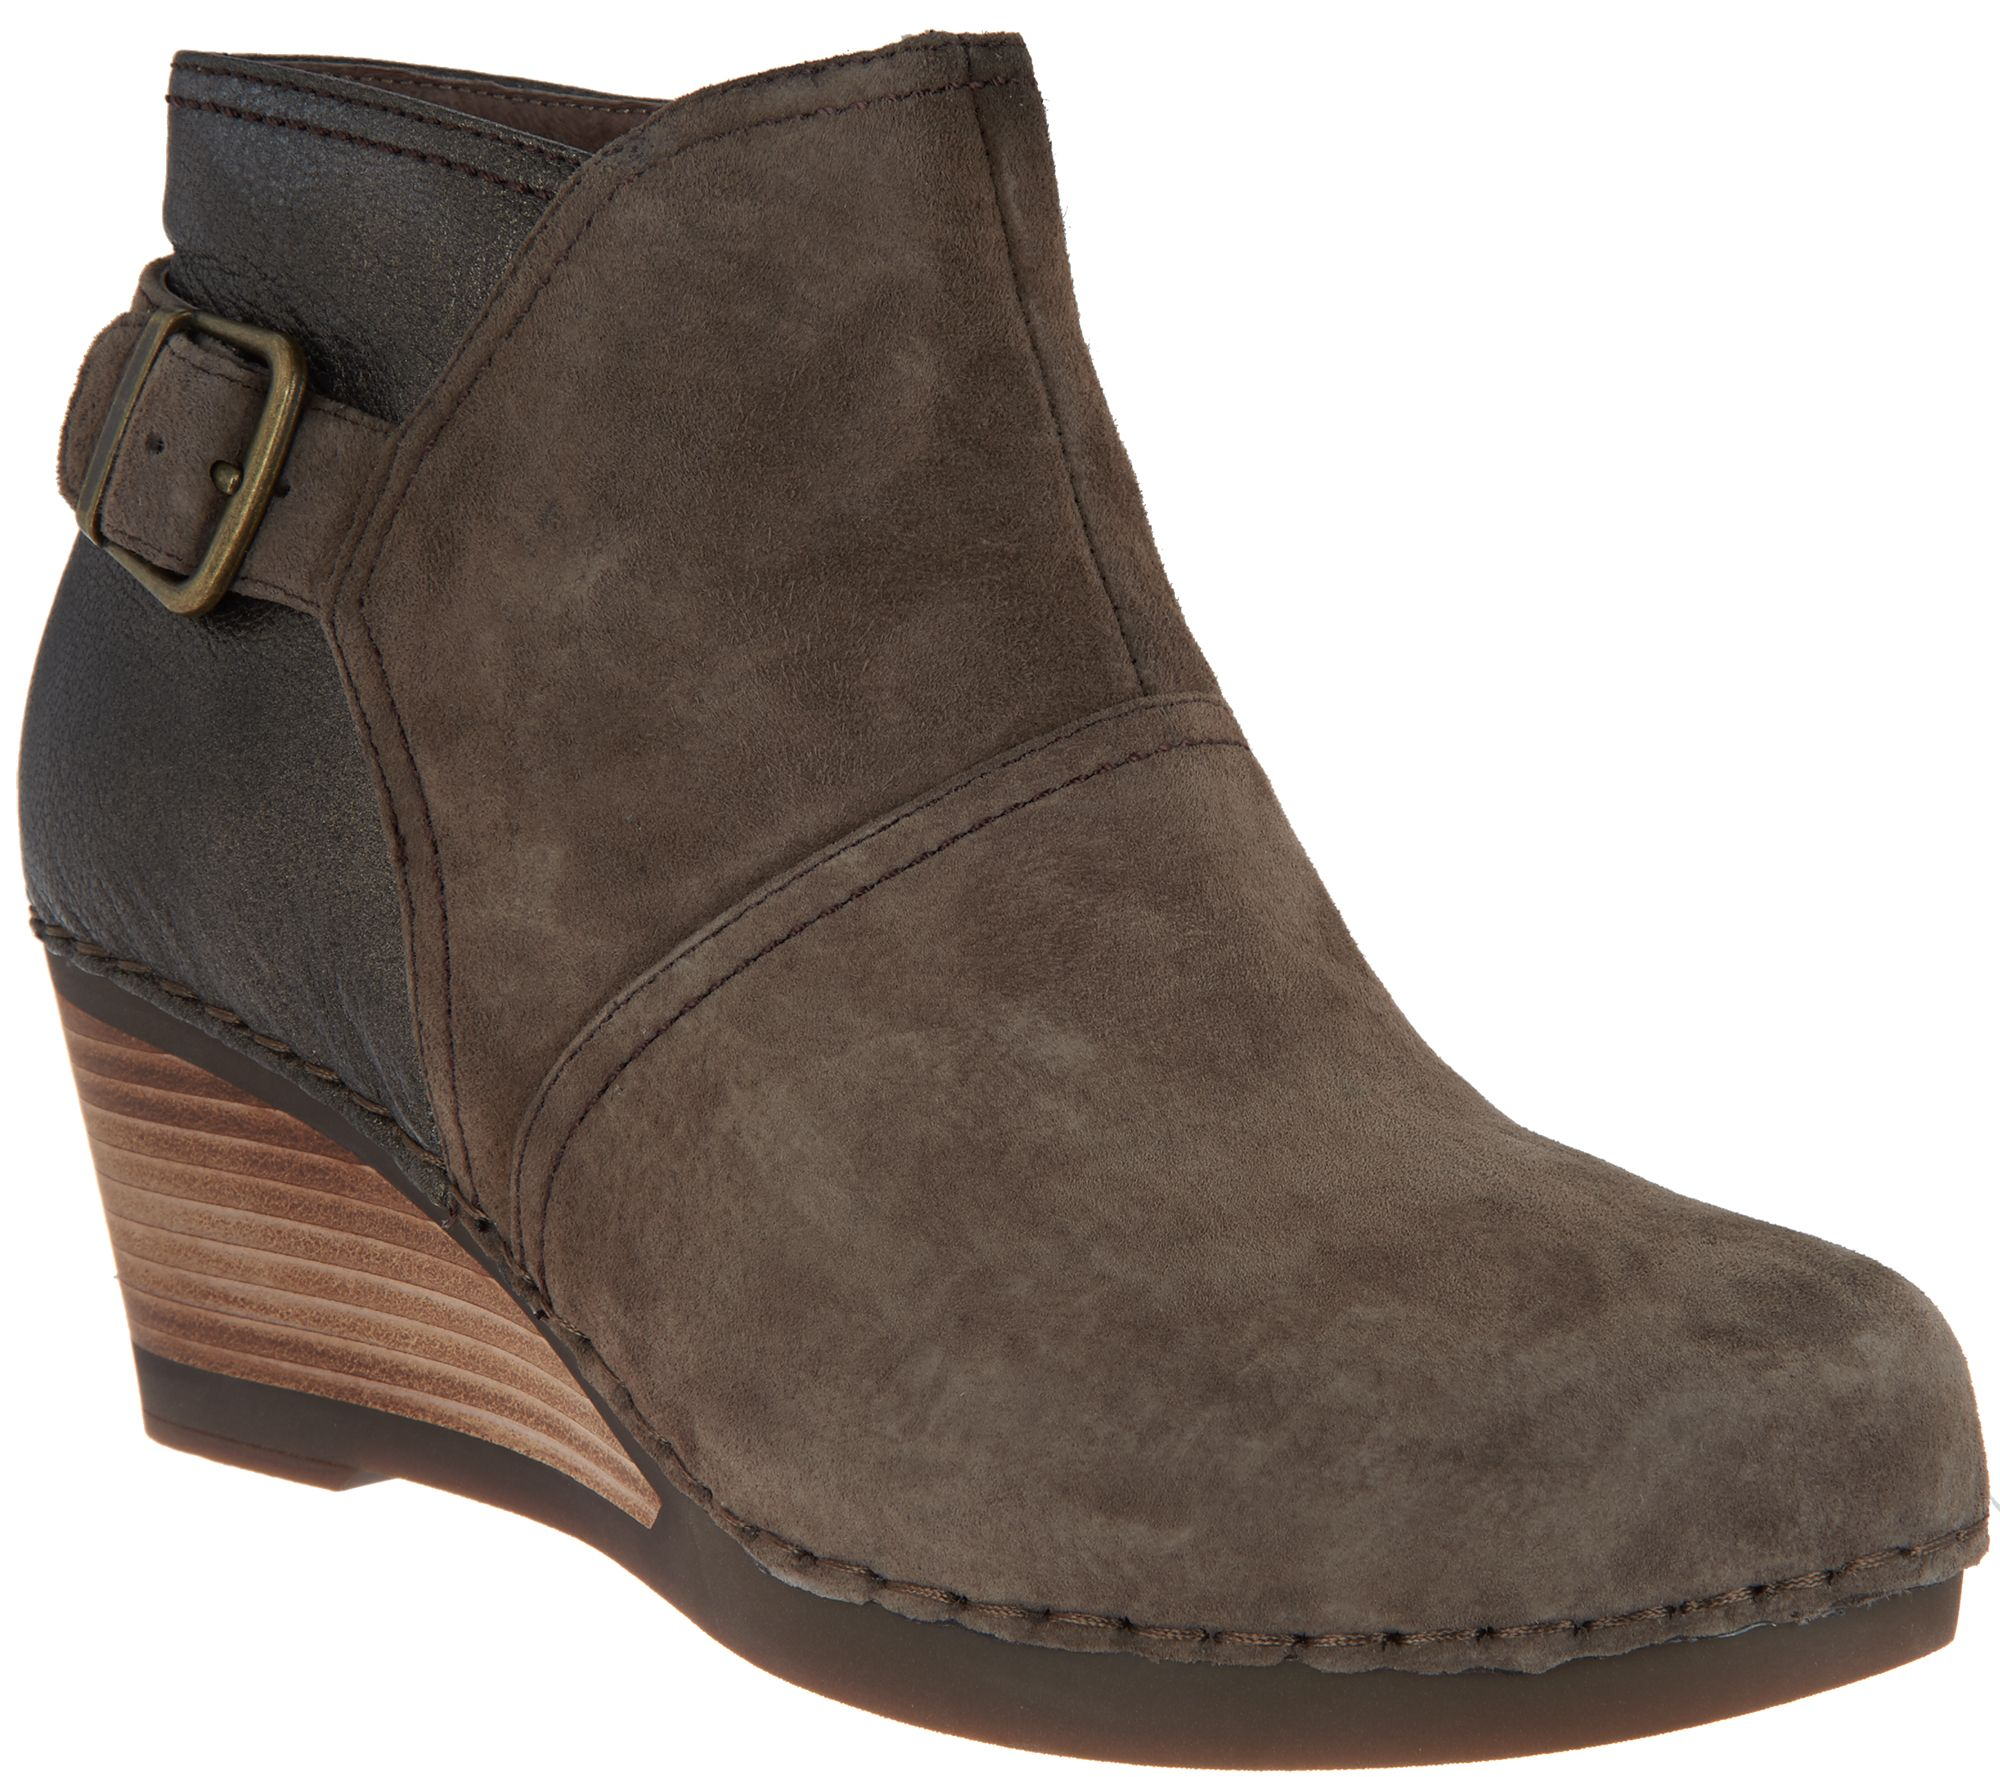 fe1f8b19c0db Dansko Nubuck or Suede Stacked Wedge Ankle Boots - Shirley - Page 1 —  QVC.com